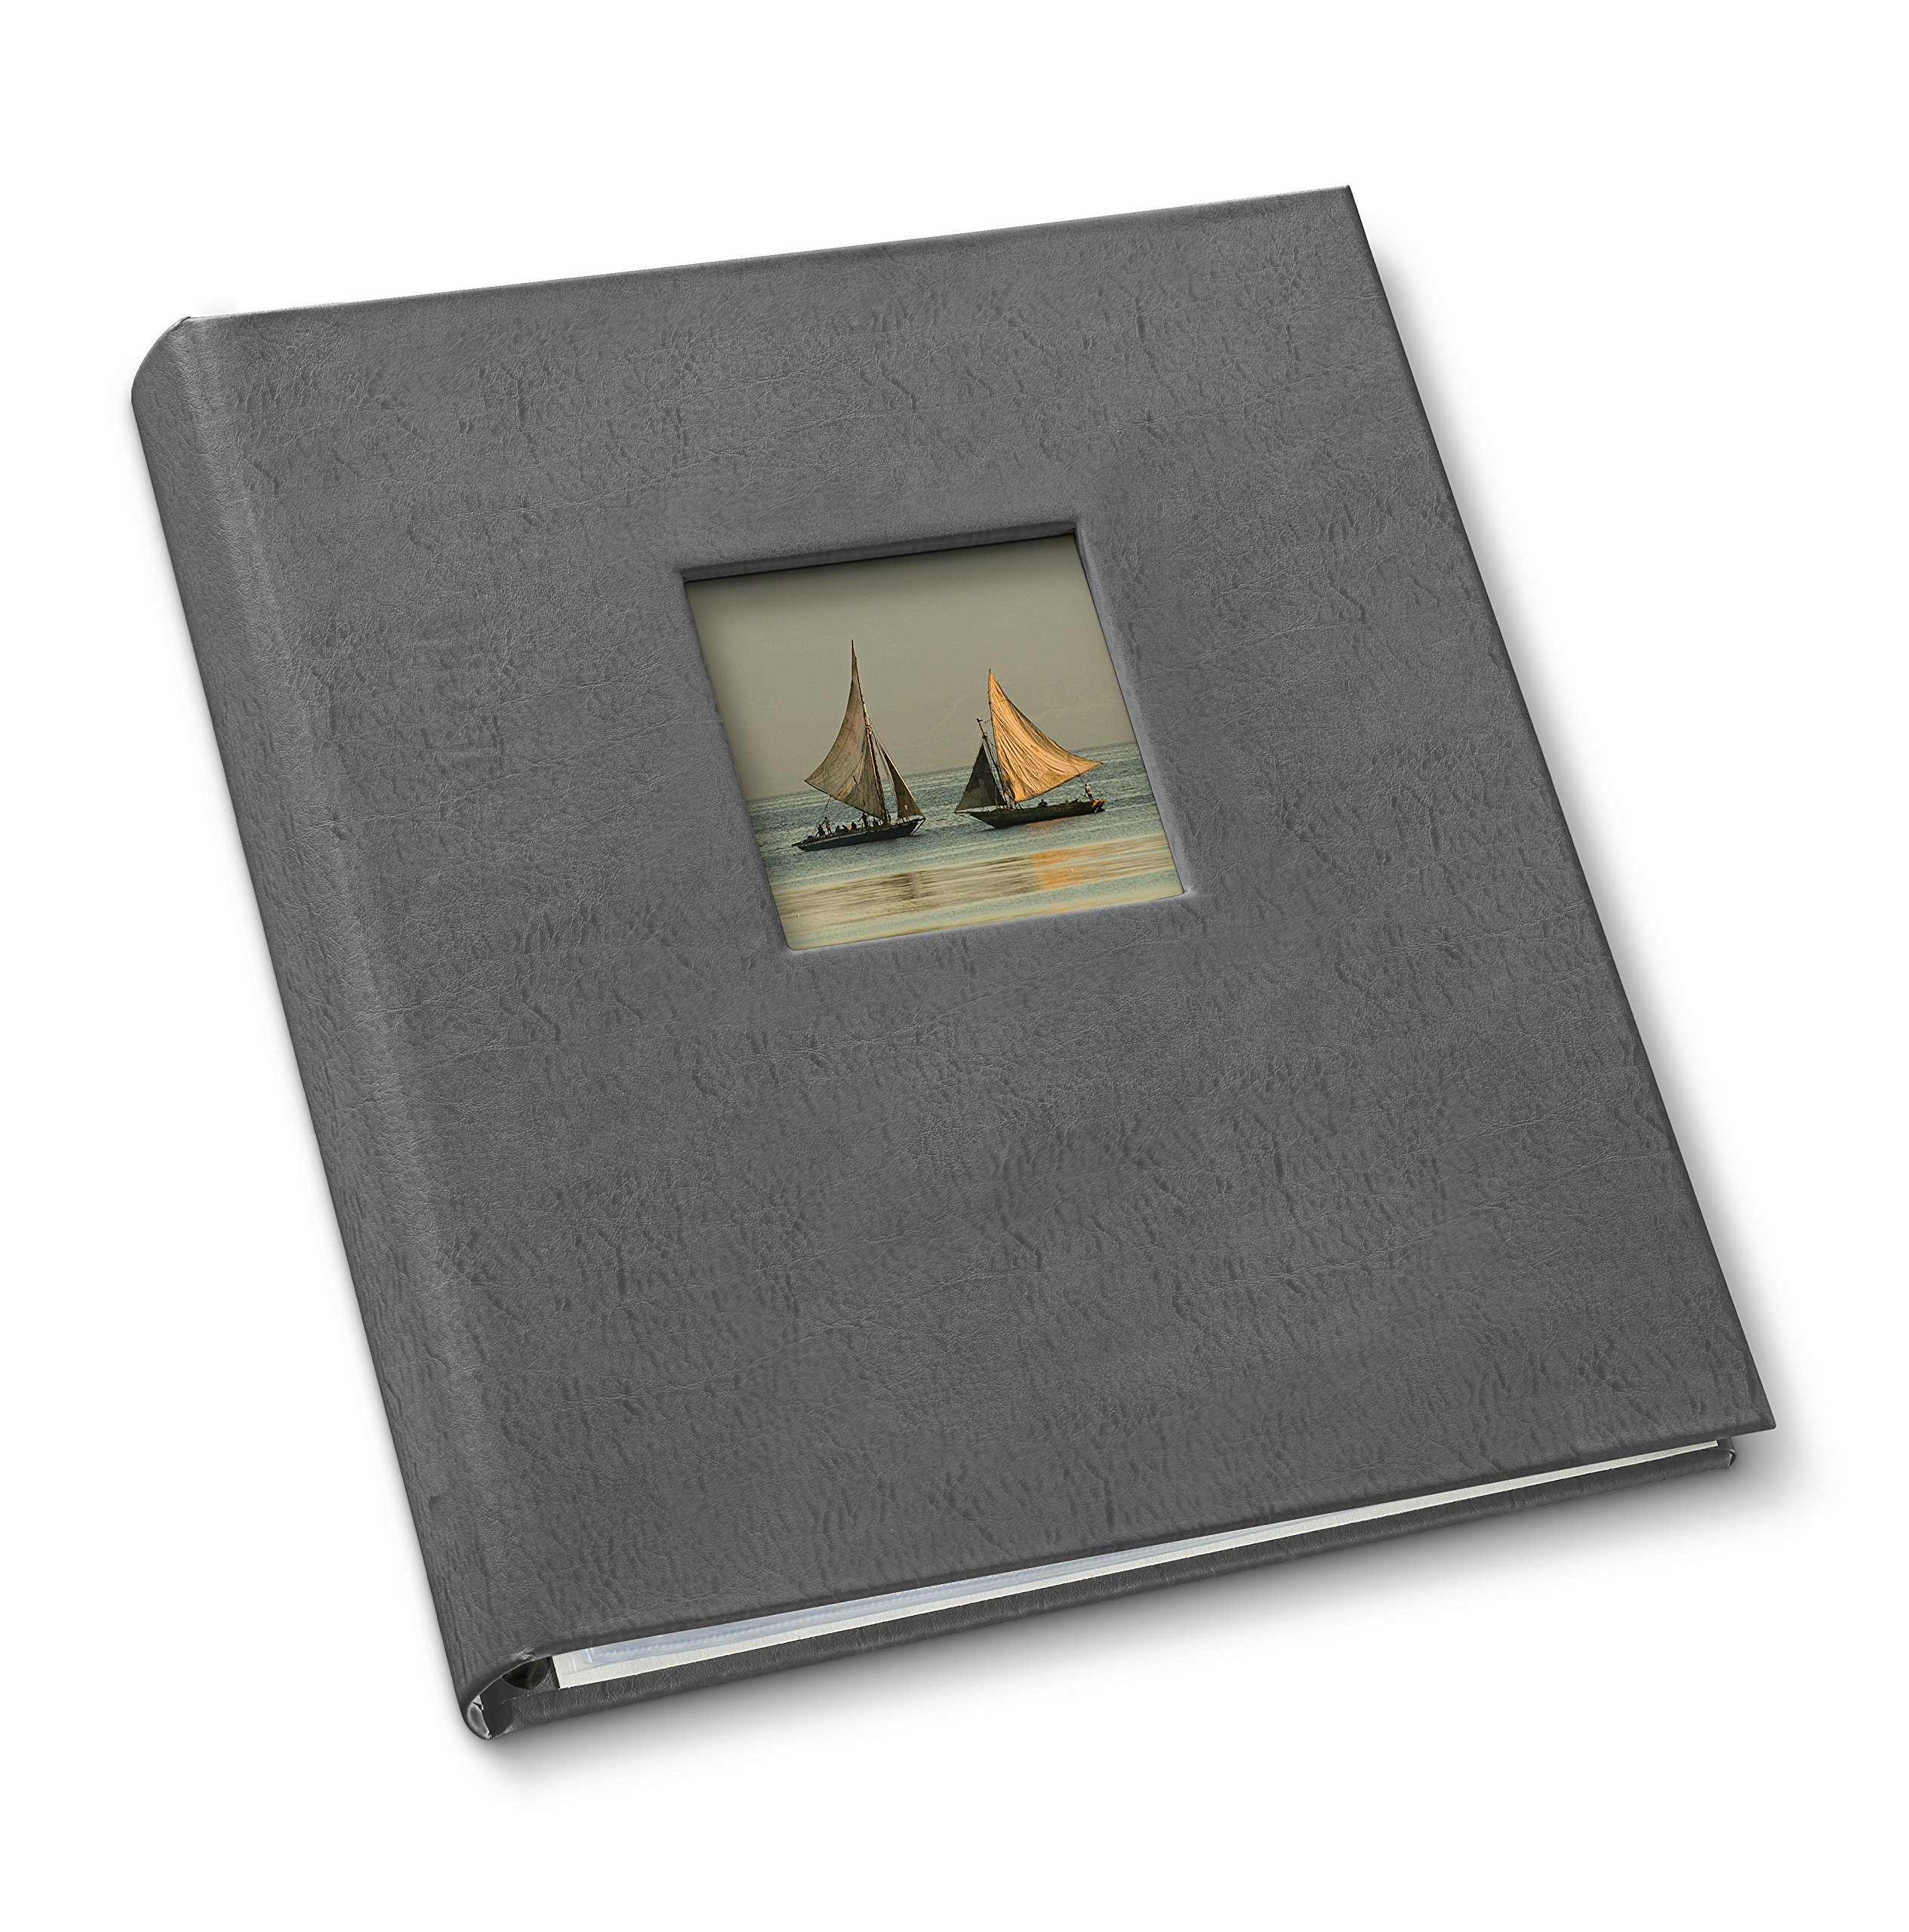 Gallery Leather Presentation Binder 1.25'' with Window Freeport Slate by Gallery Leather